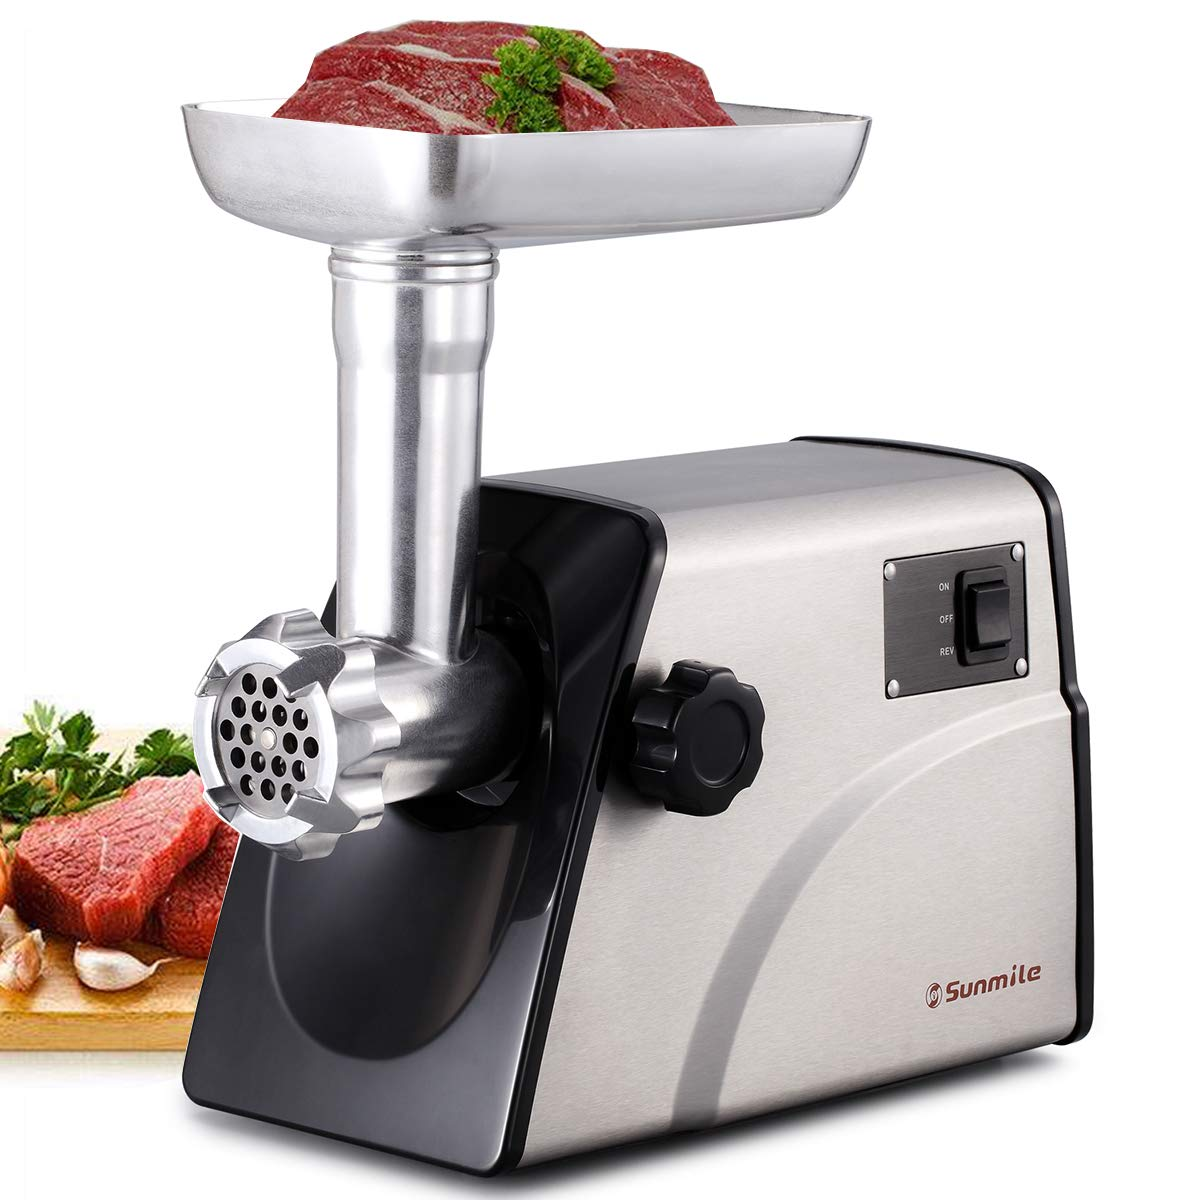 Sunmile SM-G33 Electric Meat Grinder - 1HP 800W Max Power - ETL Stainless Steel Meat Grinder Mincer Sausage Stuffer - Stainless Steel Blade and Plates, 3 Sausage Makers by Sunmile